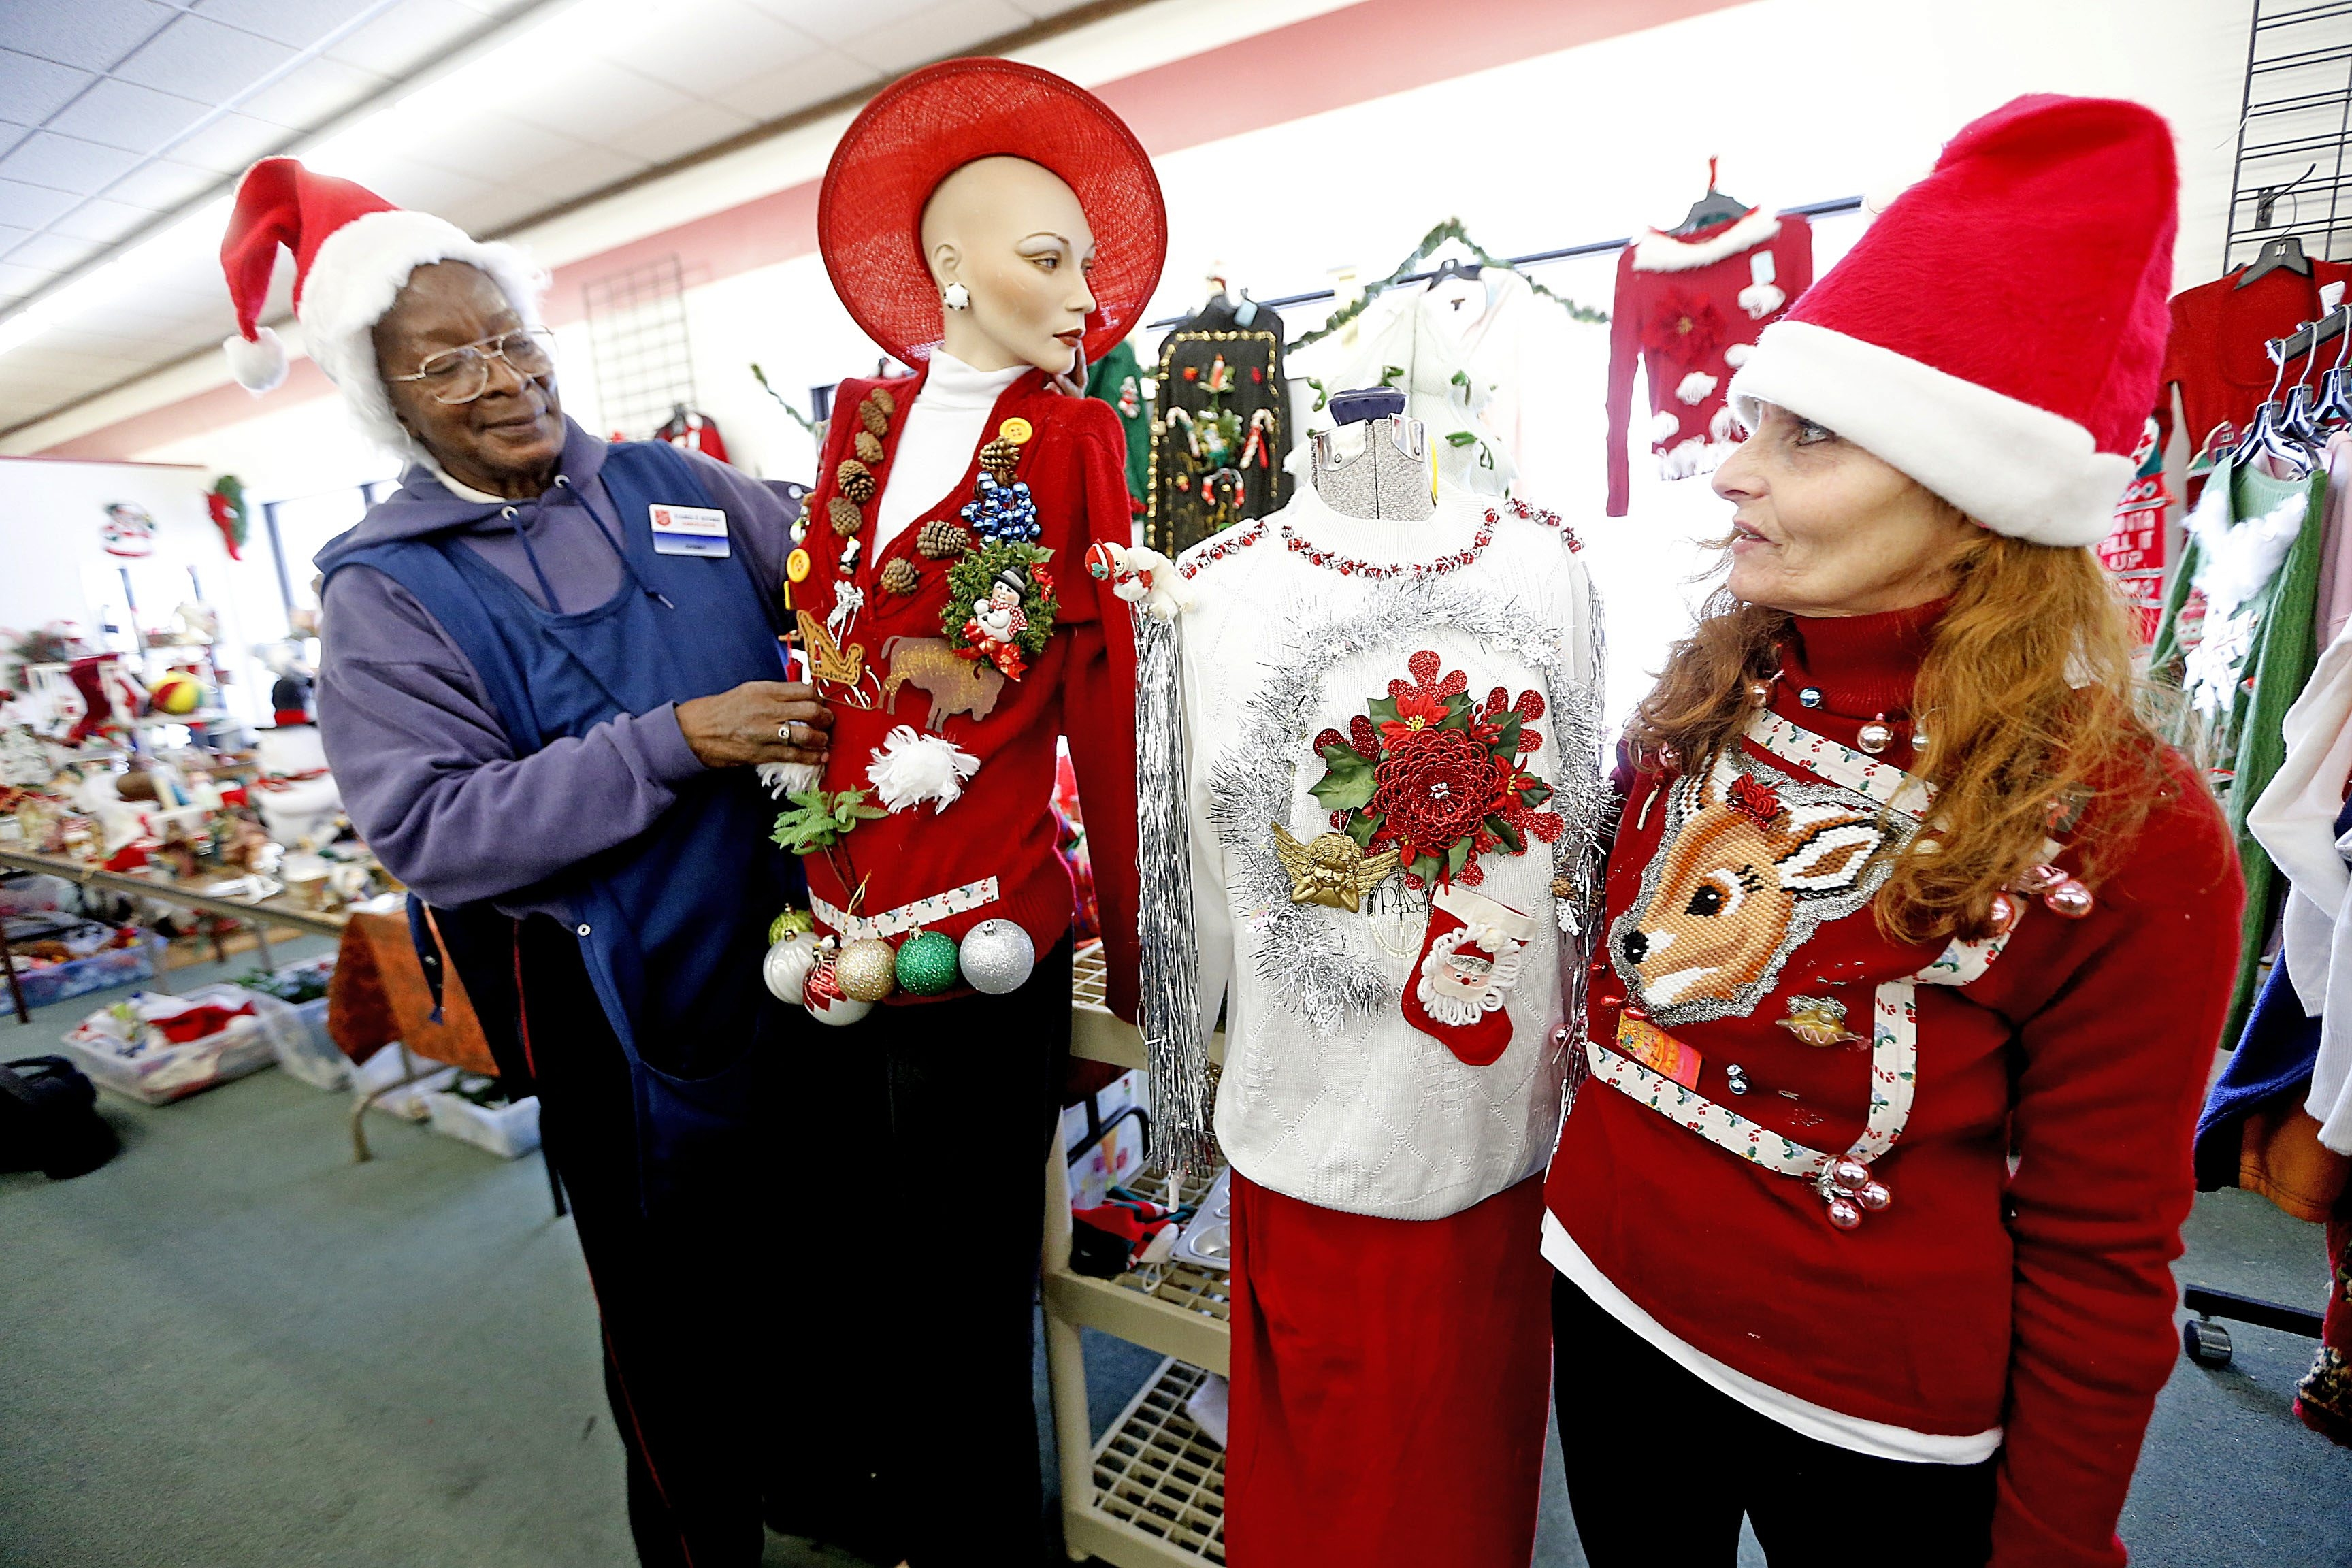 beec3d1f65d83 Ugly Christmas sweaters have become big business – The Buffalo News